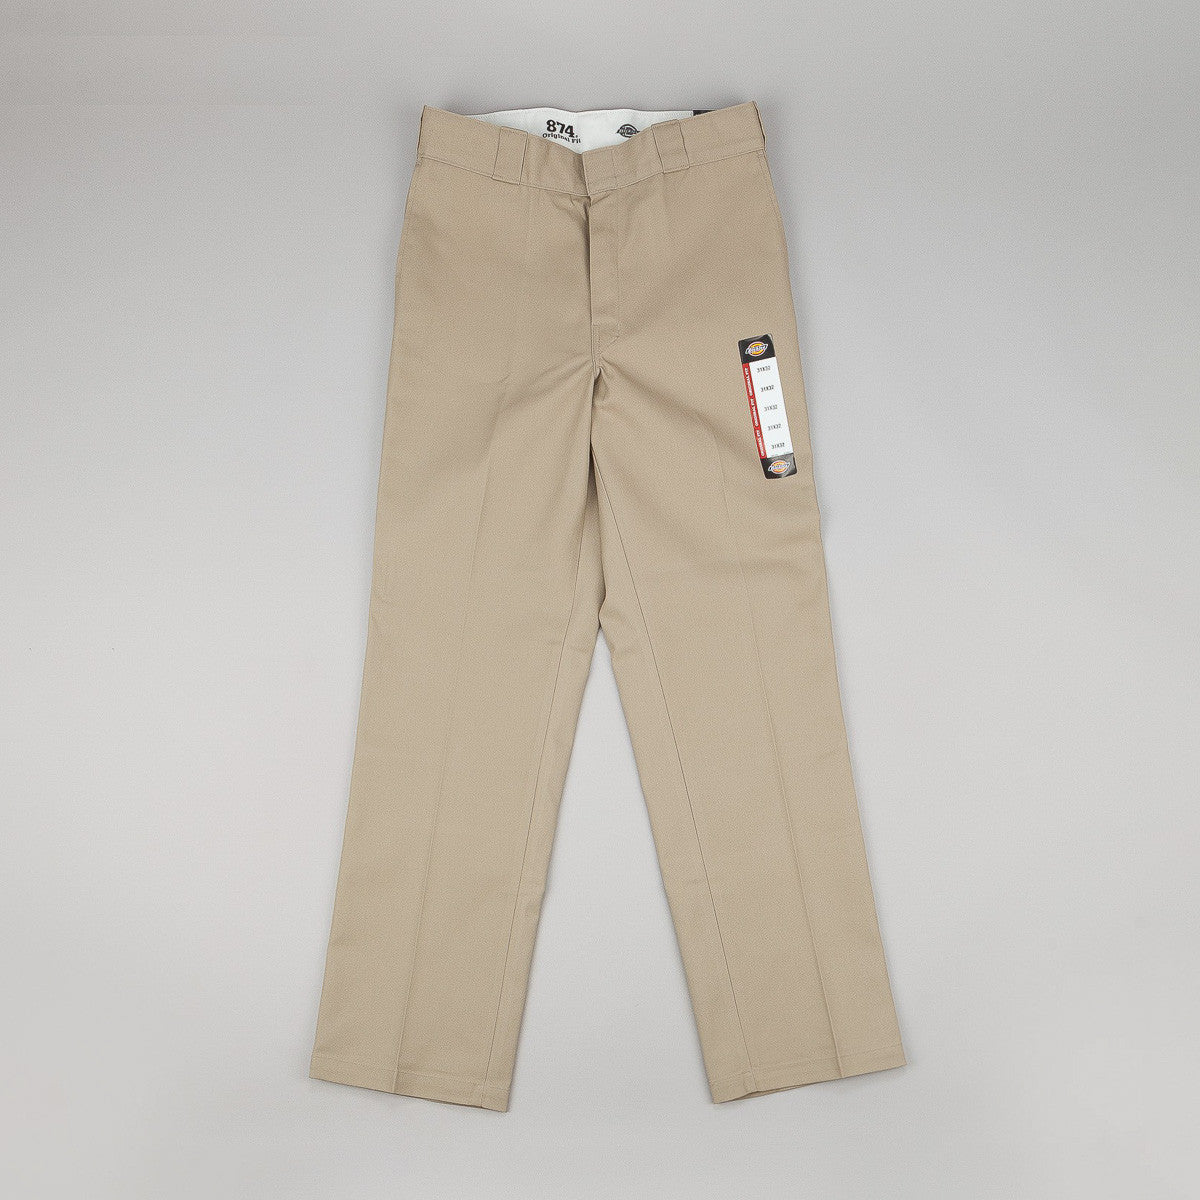 Dickies Original 874 Work Trousers Khaki